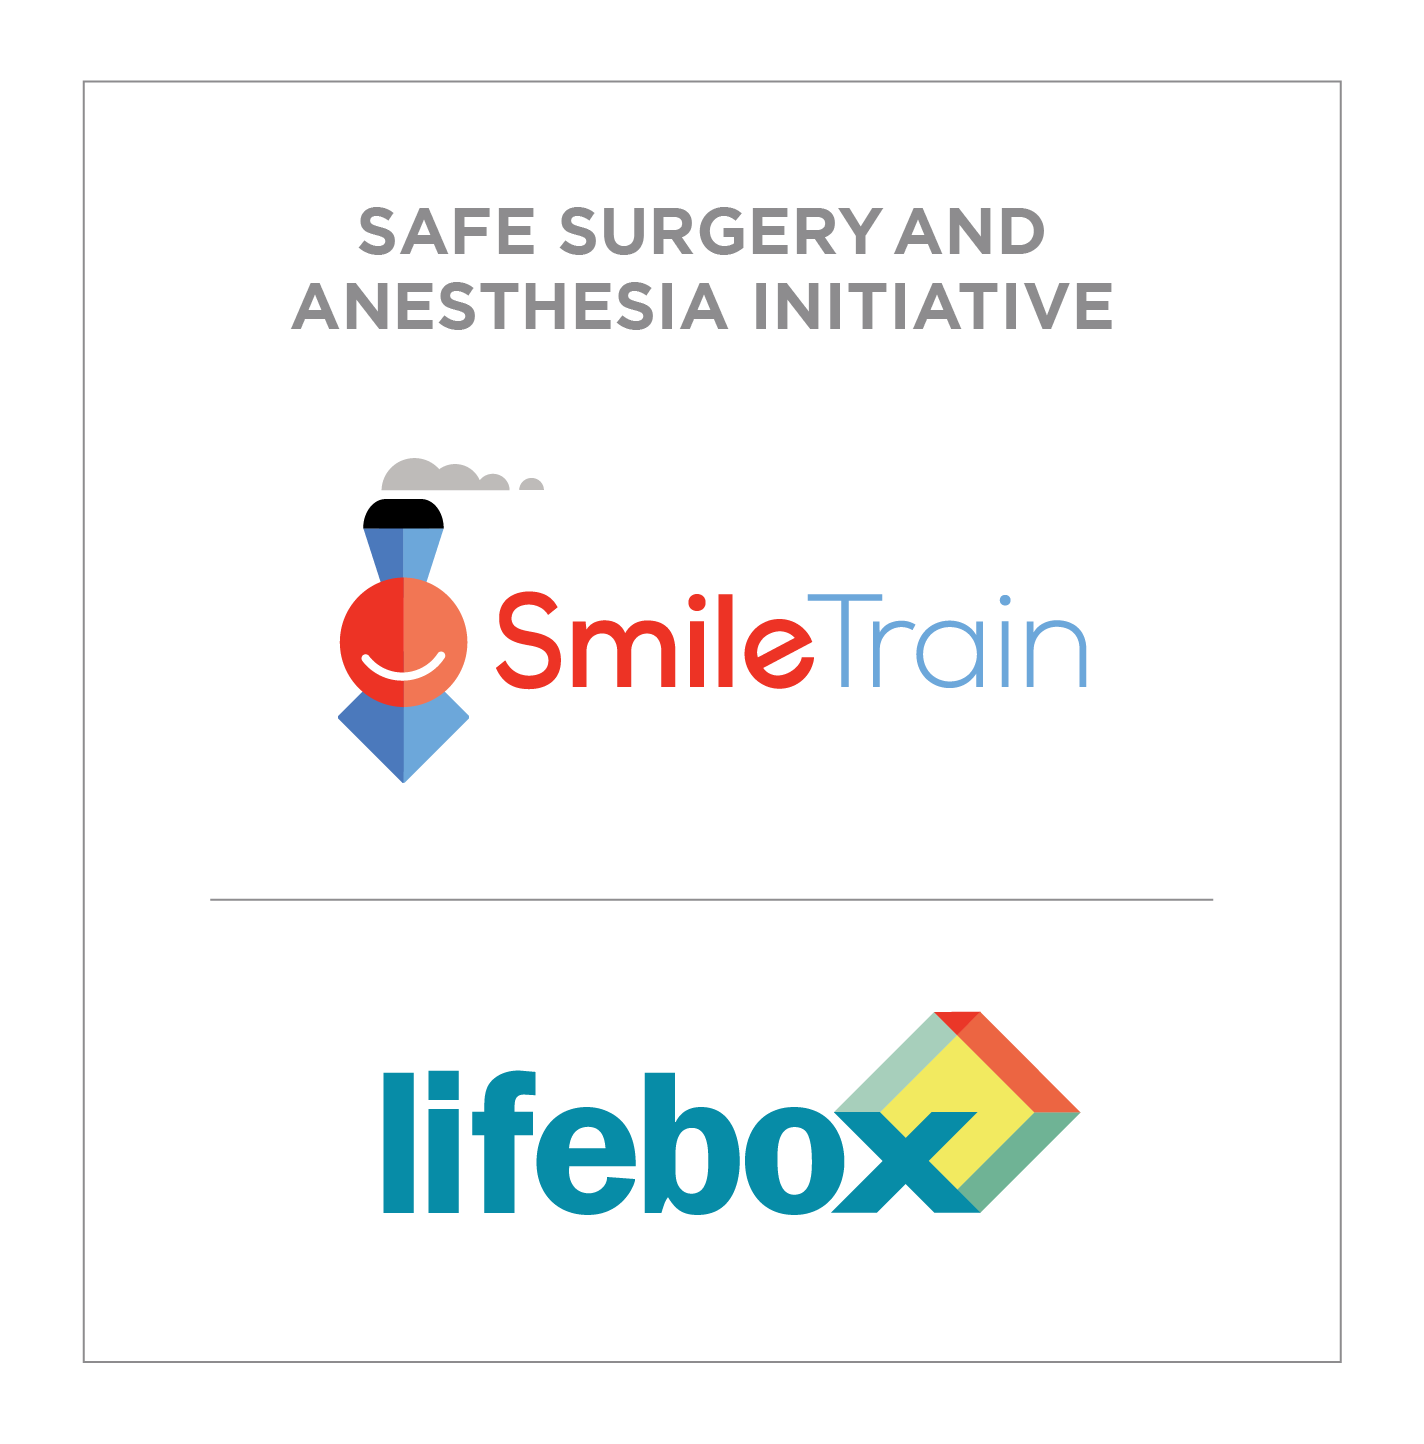 Smile Train-Lifebox Safe Surgery and Anesthesia Initiative